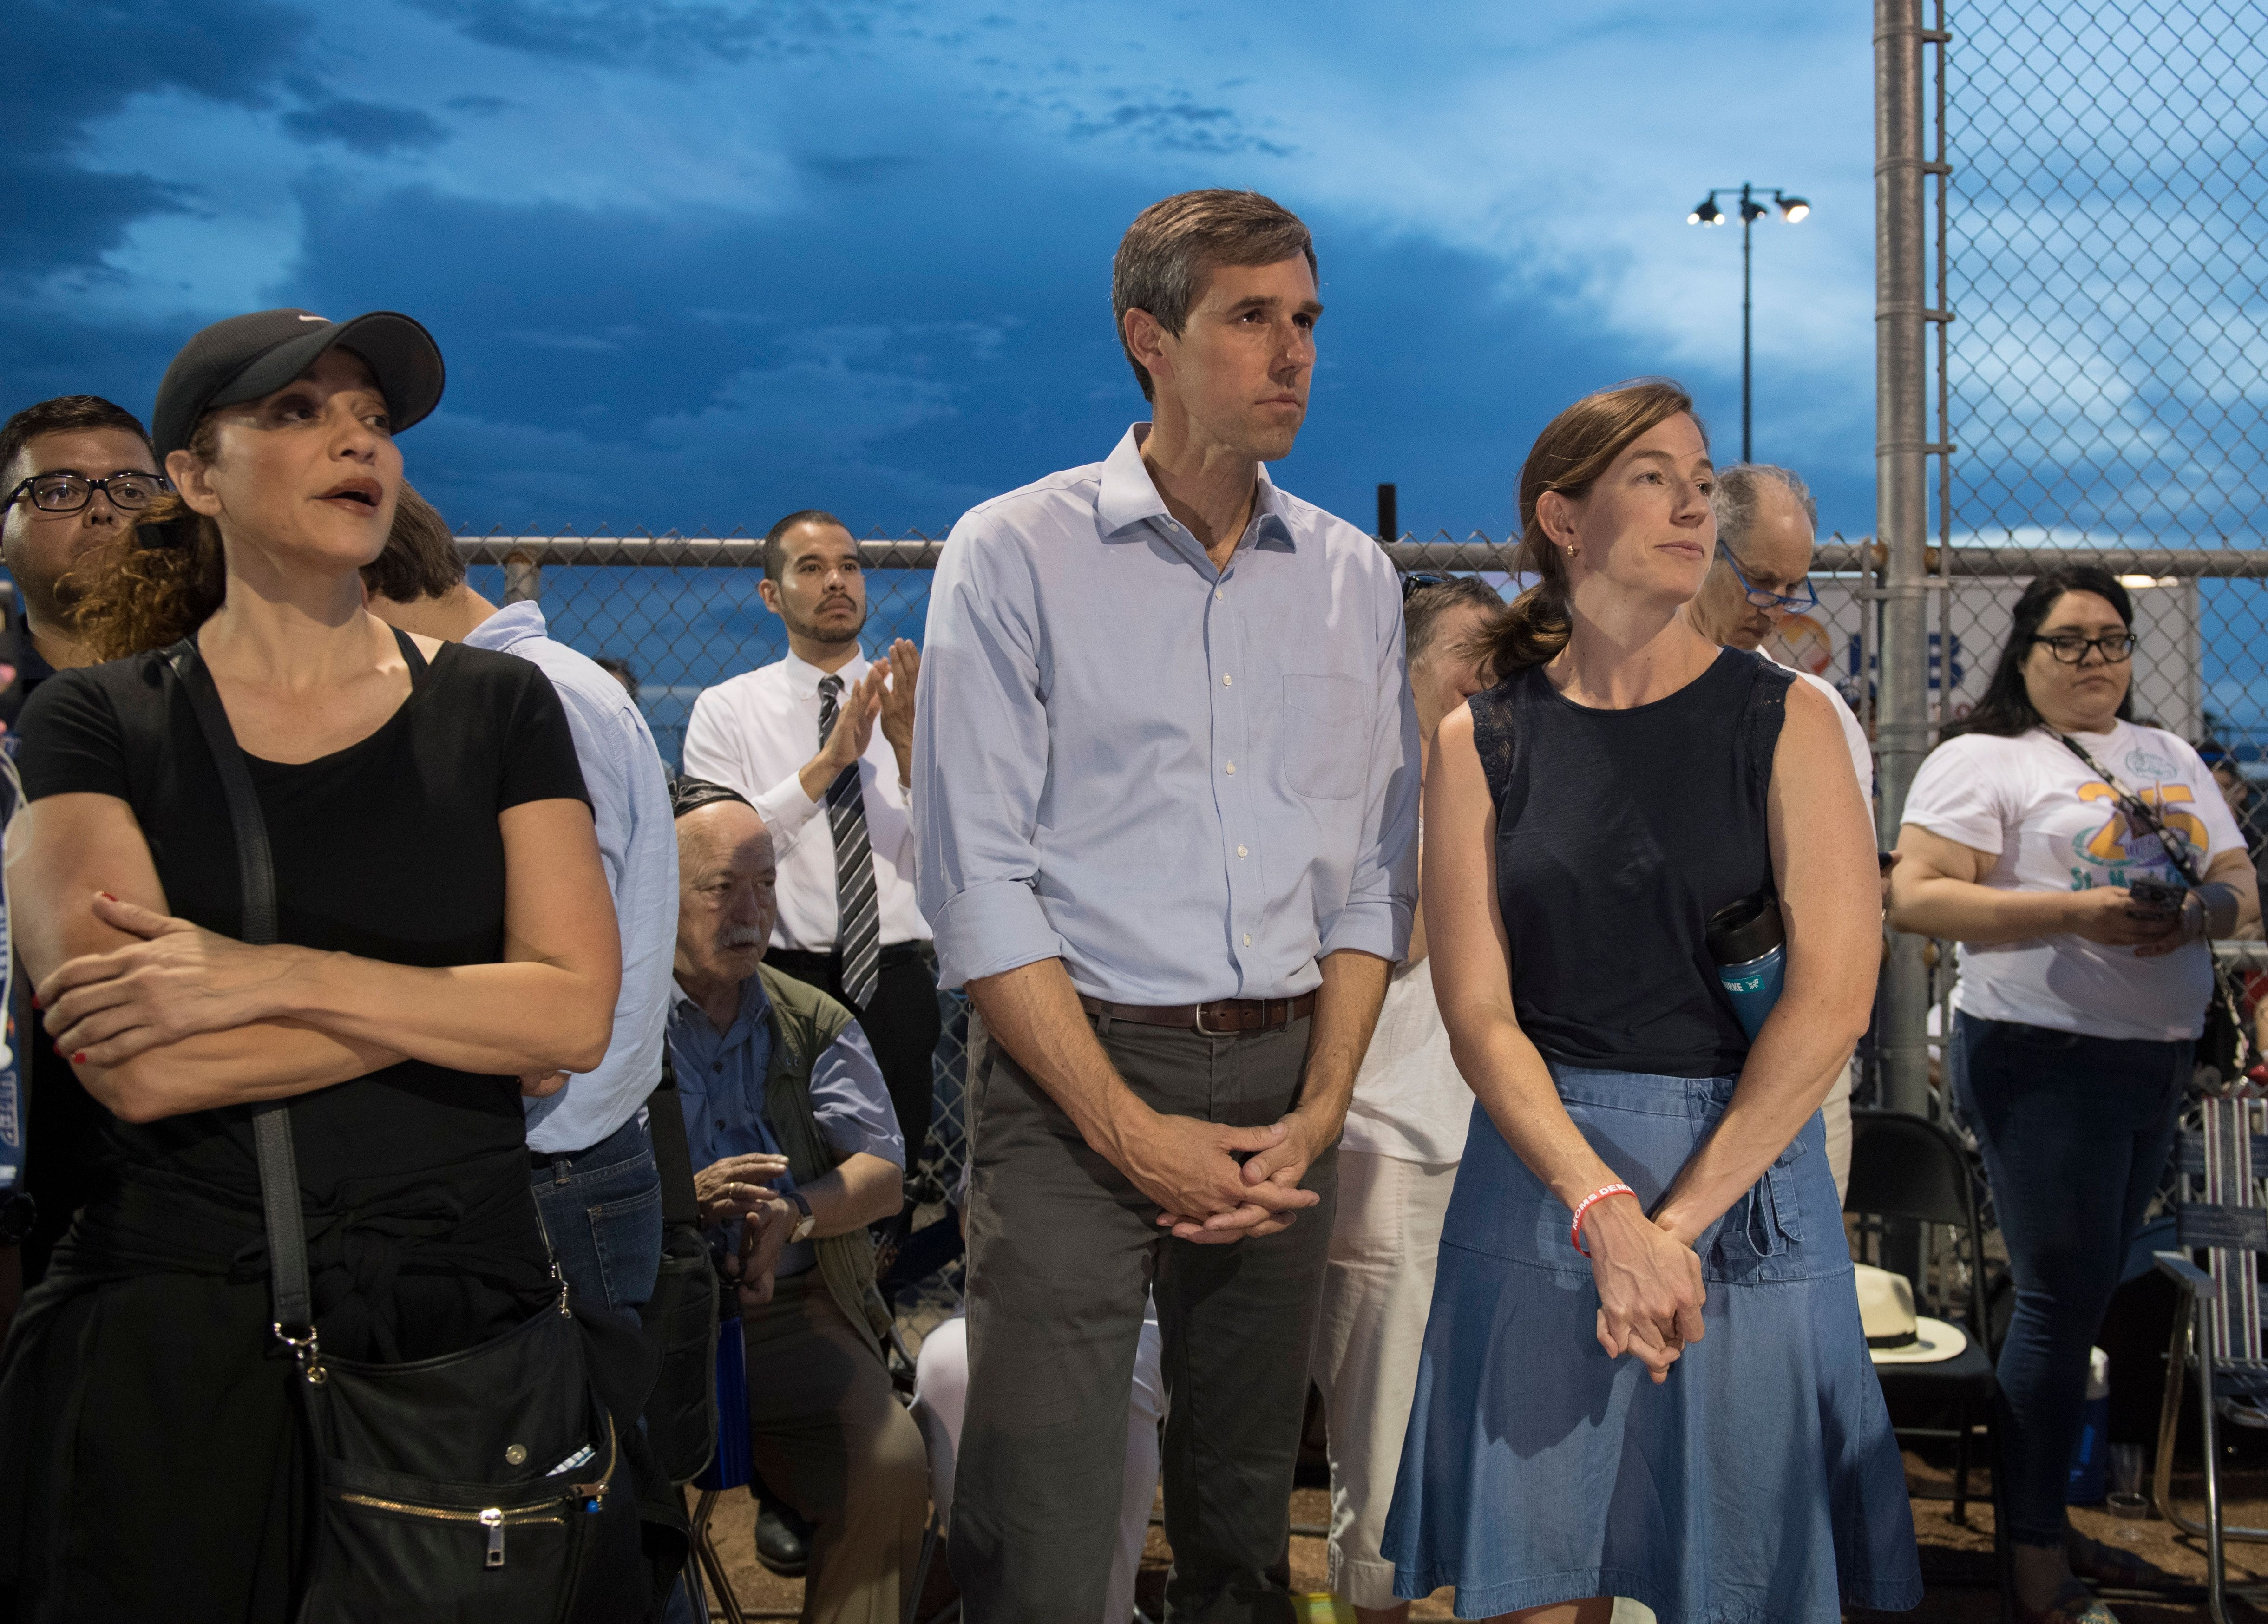 Democratic presidential hopeful and former US Representative for Texas' 16th congressional district Beto O'Rourke (C) waits to speak to the crowd, alongside his wife Amy Hoover Sanders (R), during a prayer and candle vigil organized by the city, after a shooting left 20 people dead at the Cielo Vista Mall WalMart in El Paso, Texas, on August 4, 2019.